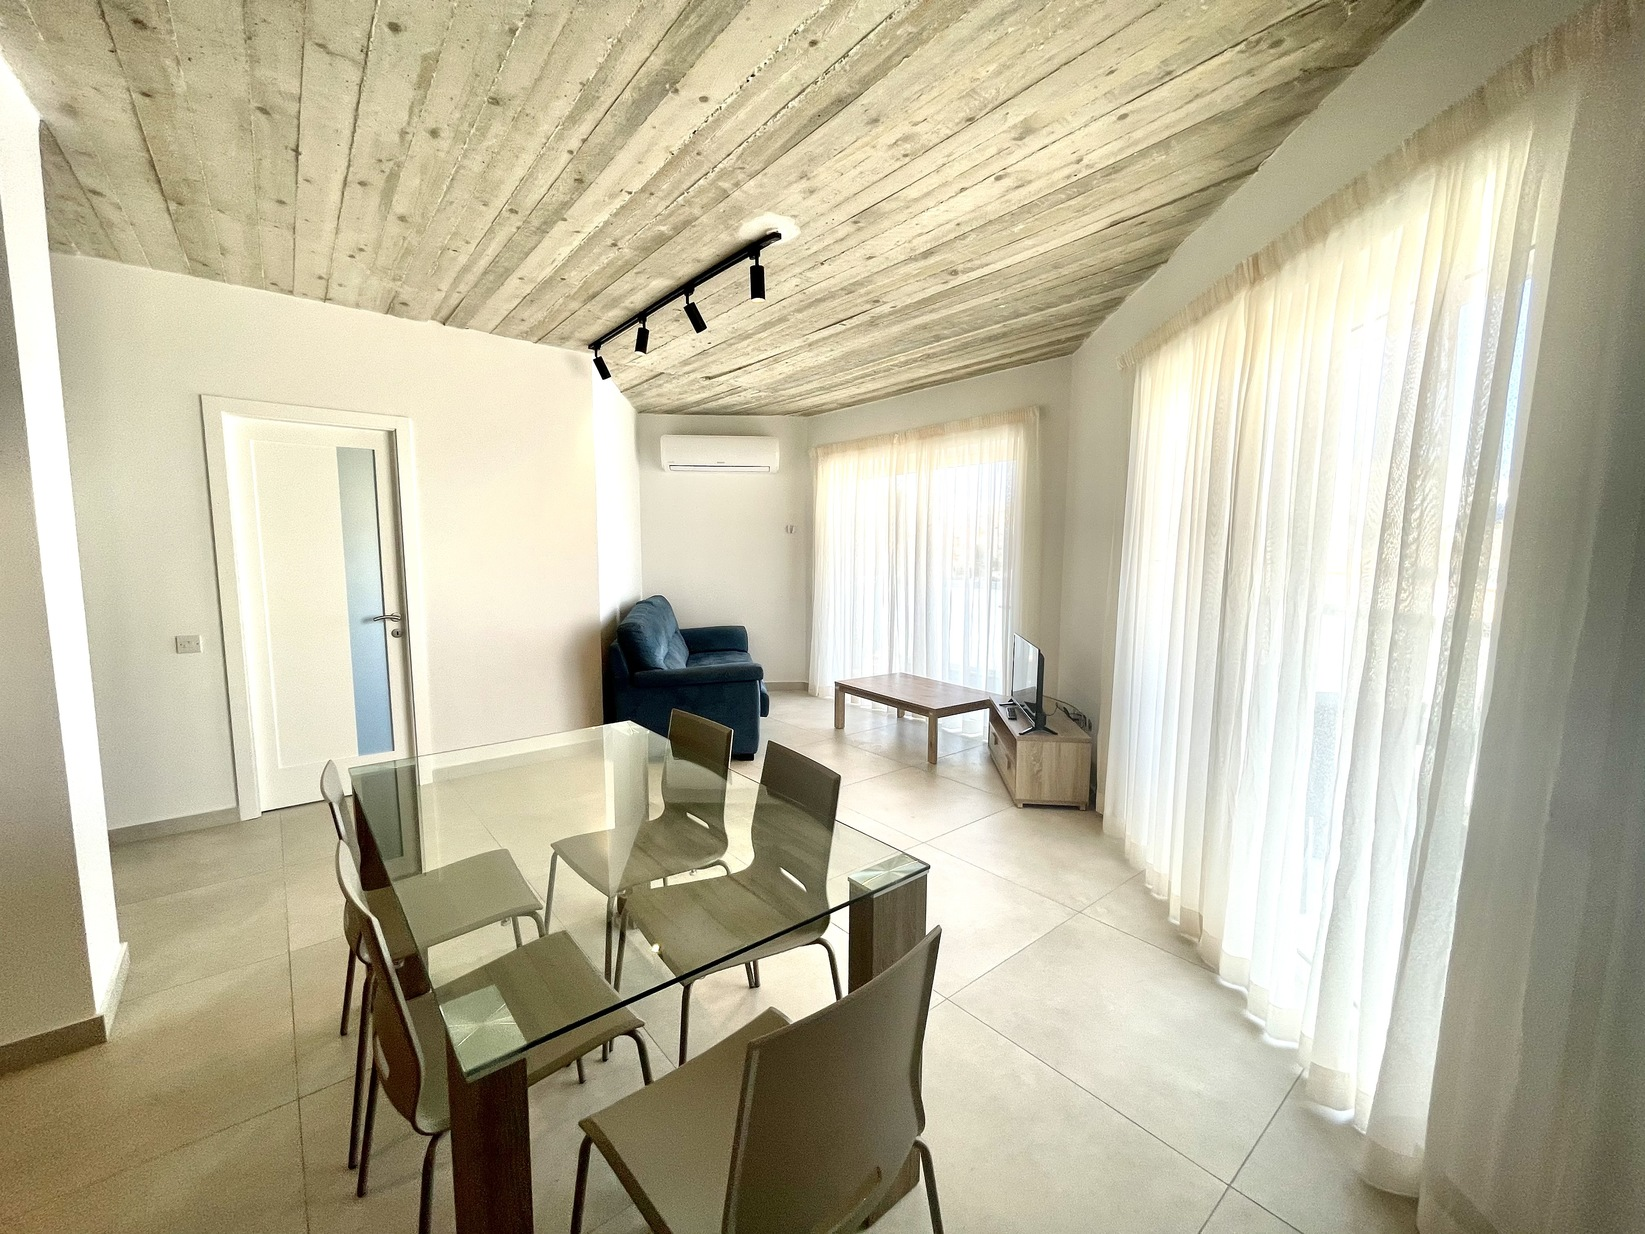 4 bed Apartment For Rent in Swieqi, Swieqi - thumb 3